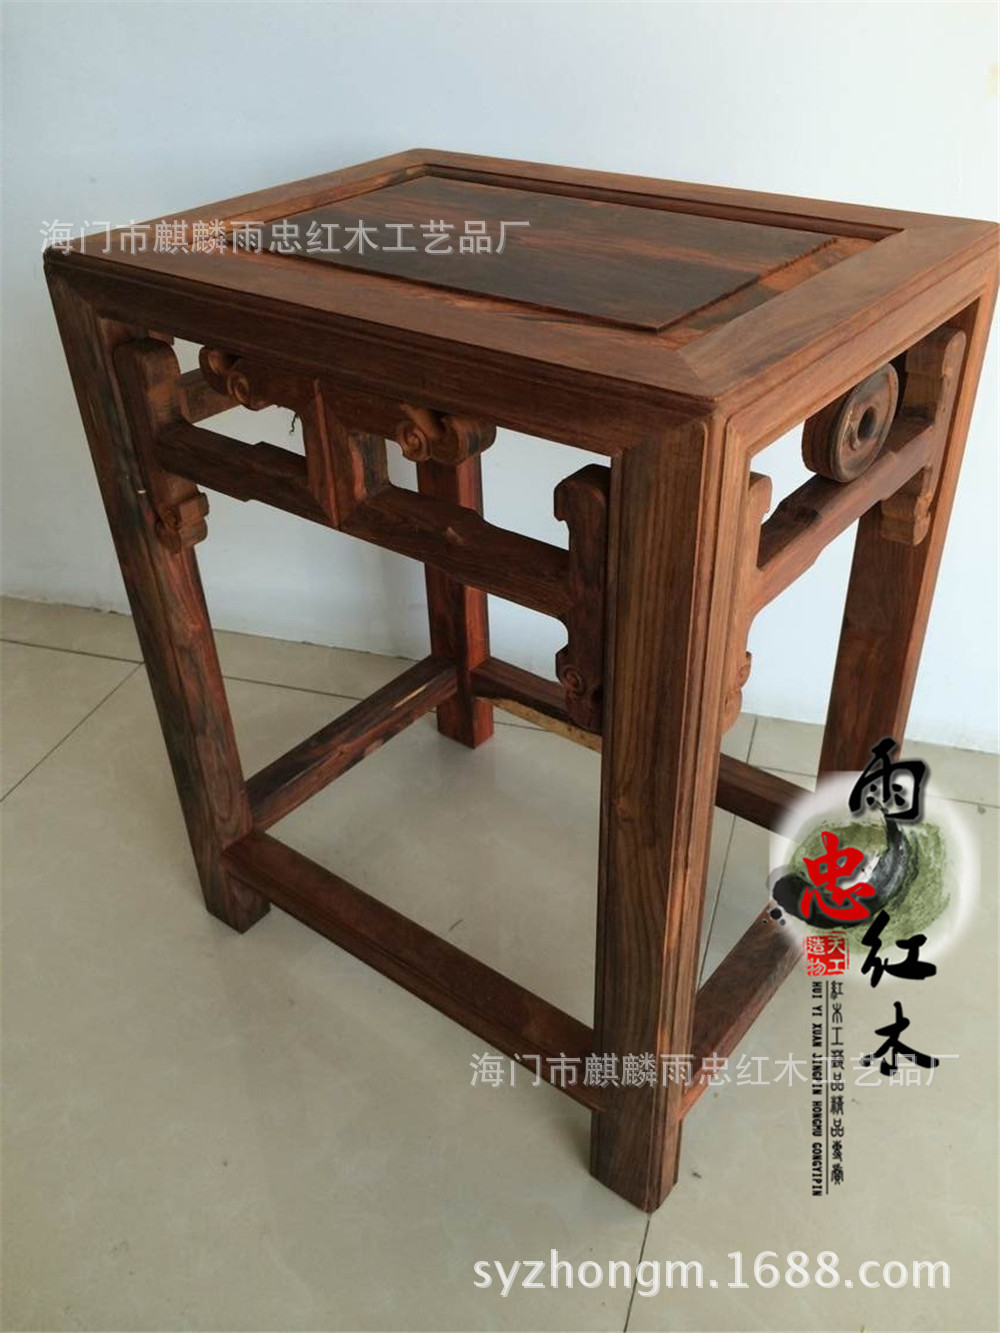 Laos red wood small stool square stool Cochin rosewood mahogany red wood Toys Stool Desks